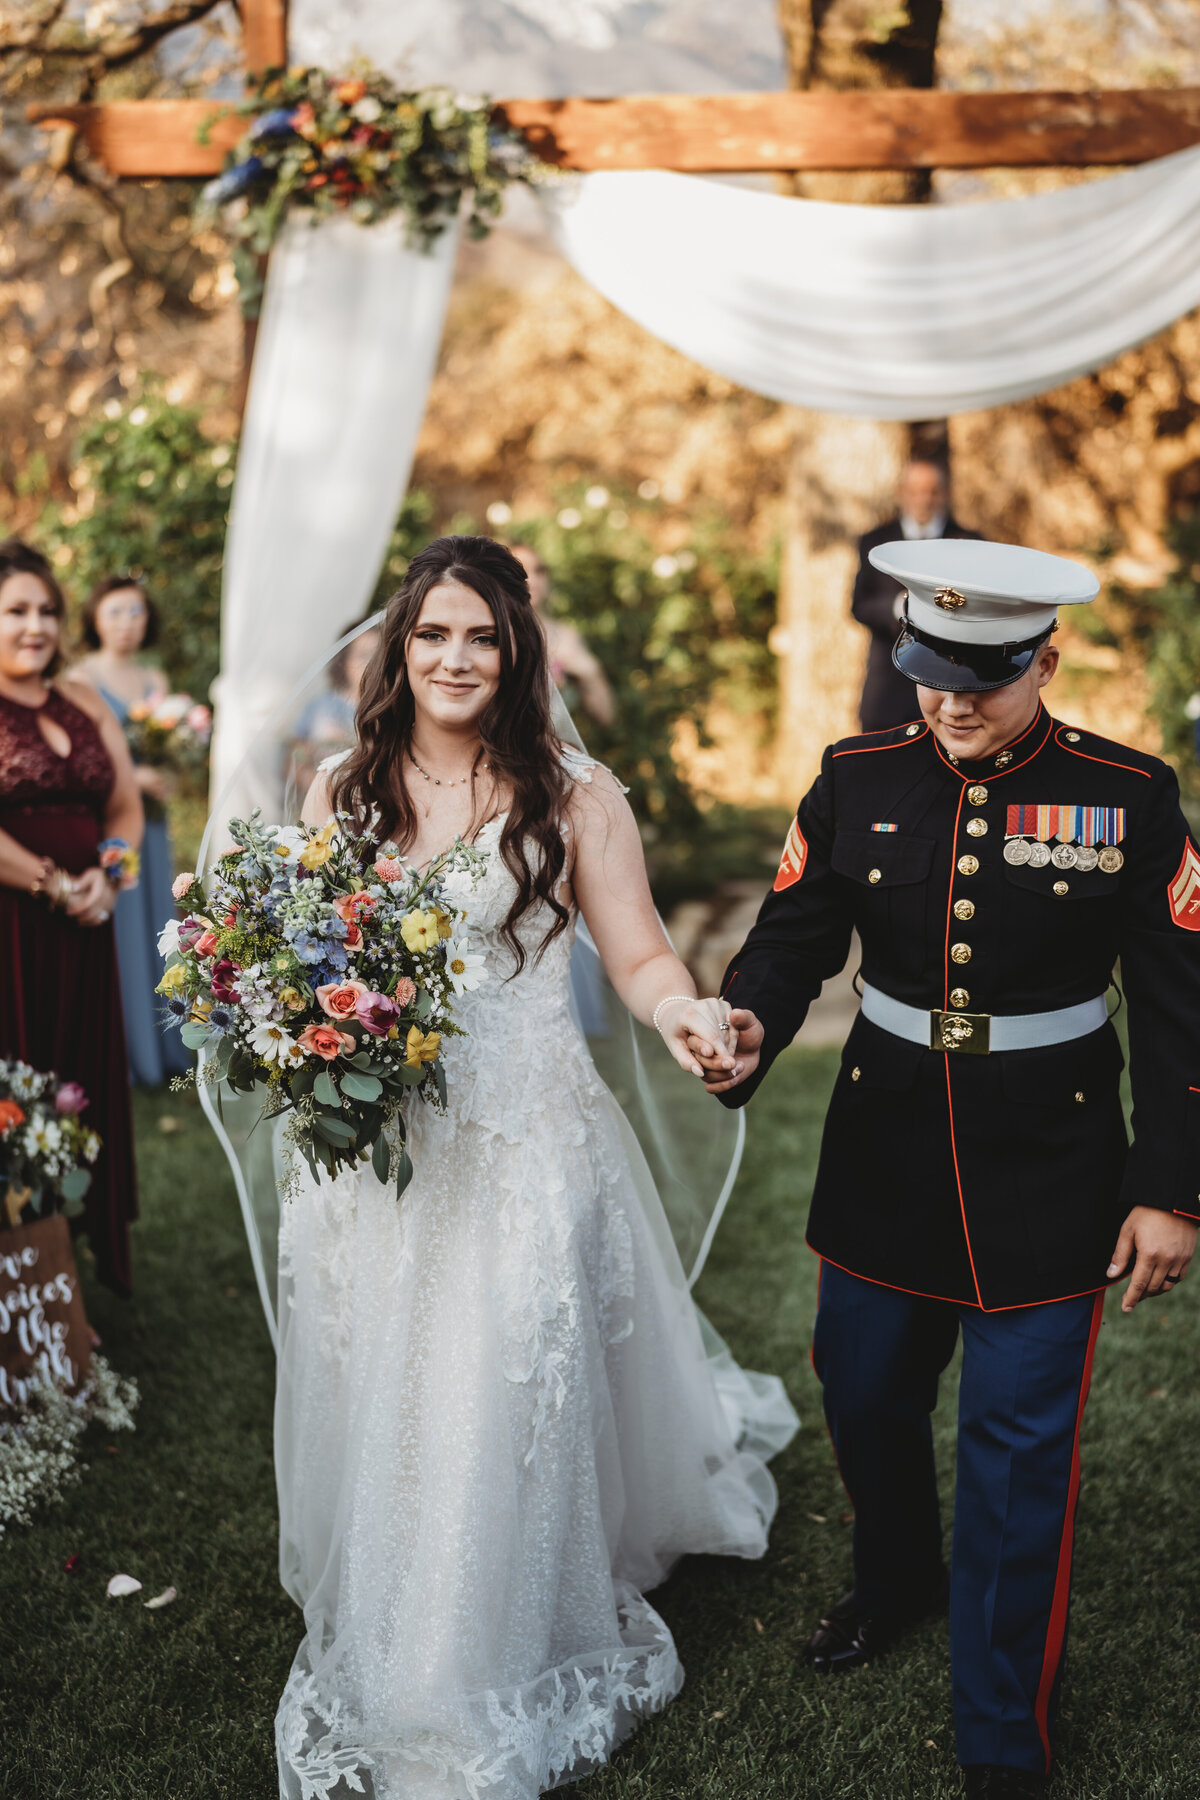 Ceremony-Mile High Oaks Wedding-Janae Marie Photography105